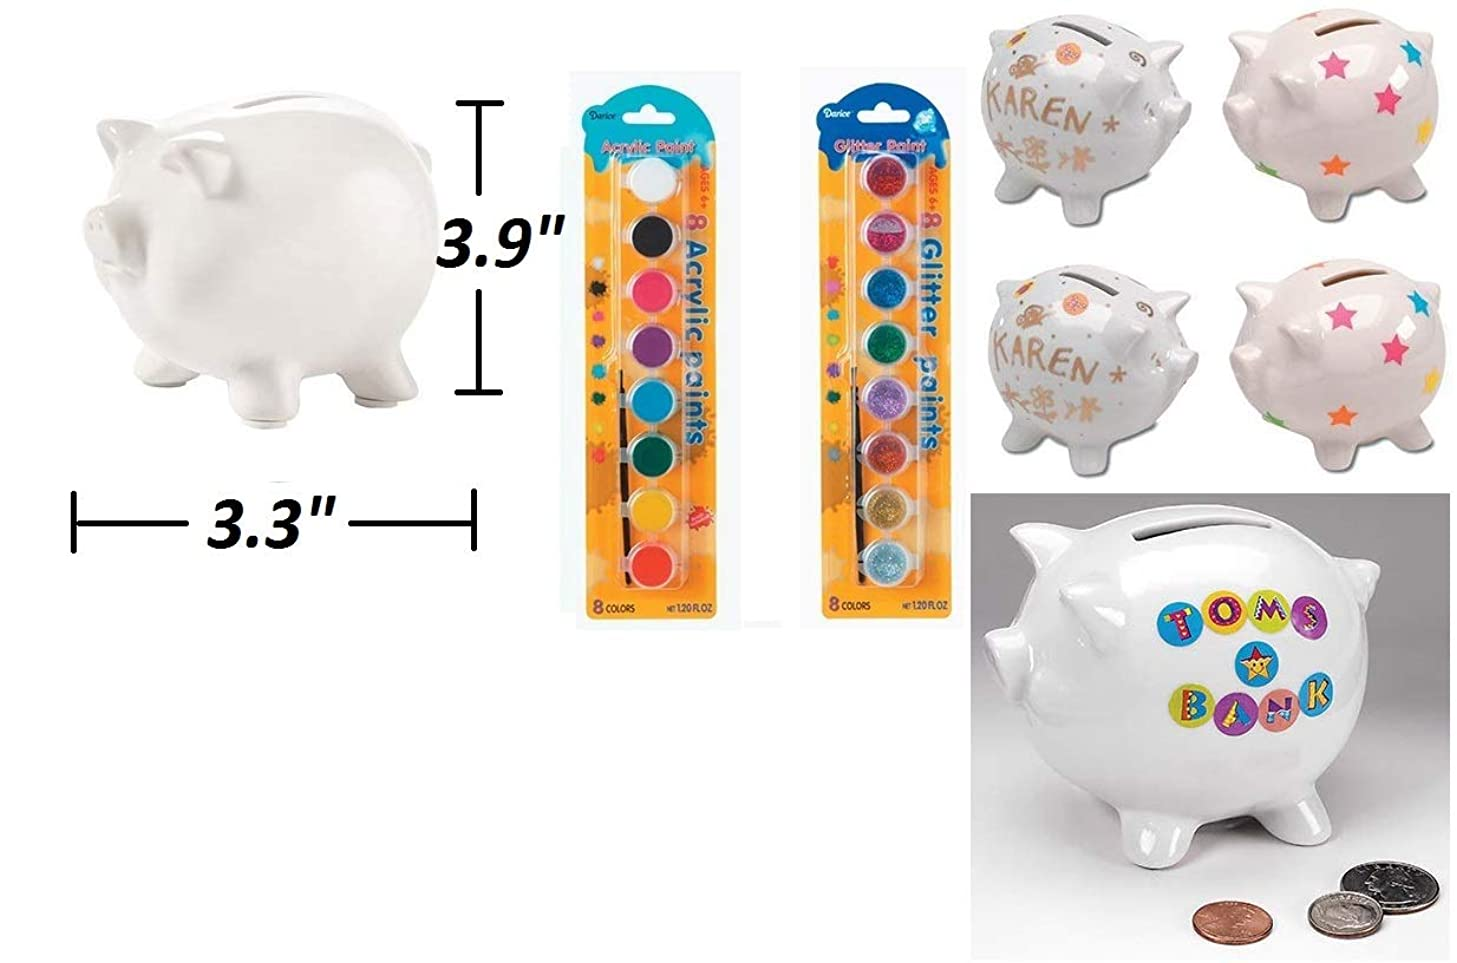 J&J's ToyScape 6 Pack Ceramic White Piggy Bank with 16 Acrylic & Glitter Paint Pots | DIY Craft Ideas for Kids, Summer Fun Art, School Projects